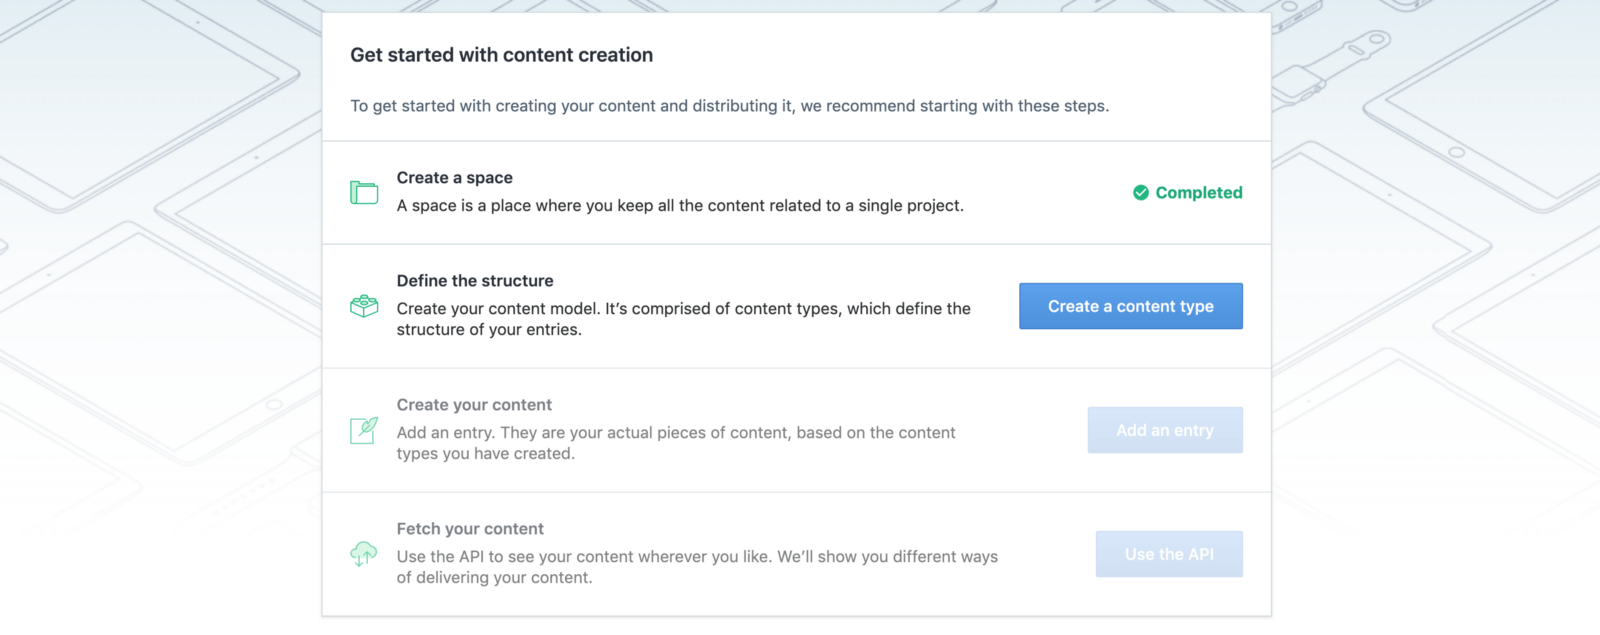 Create a content type